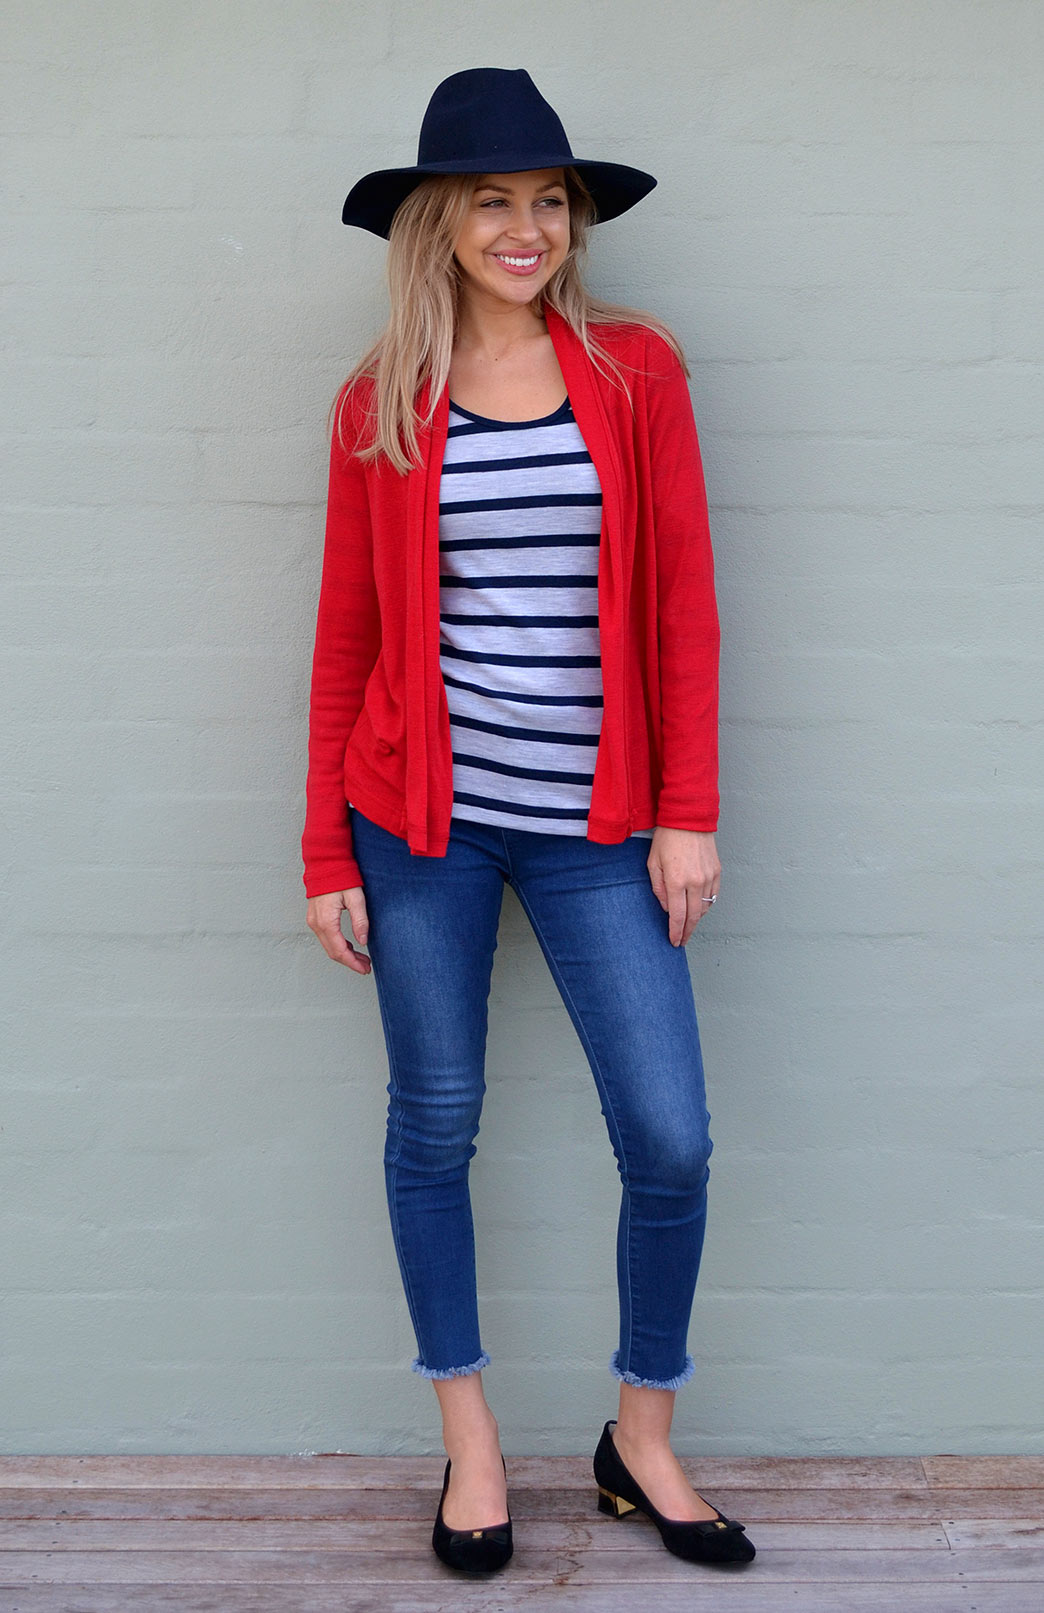 Mini Drape Cardigan - Women's Bright Flame Red Long Sleeve Merino Wool Cardigan - Smitten Merino Tasmania Australia